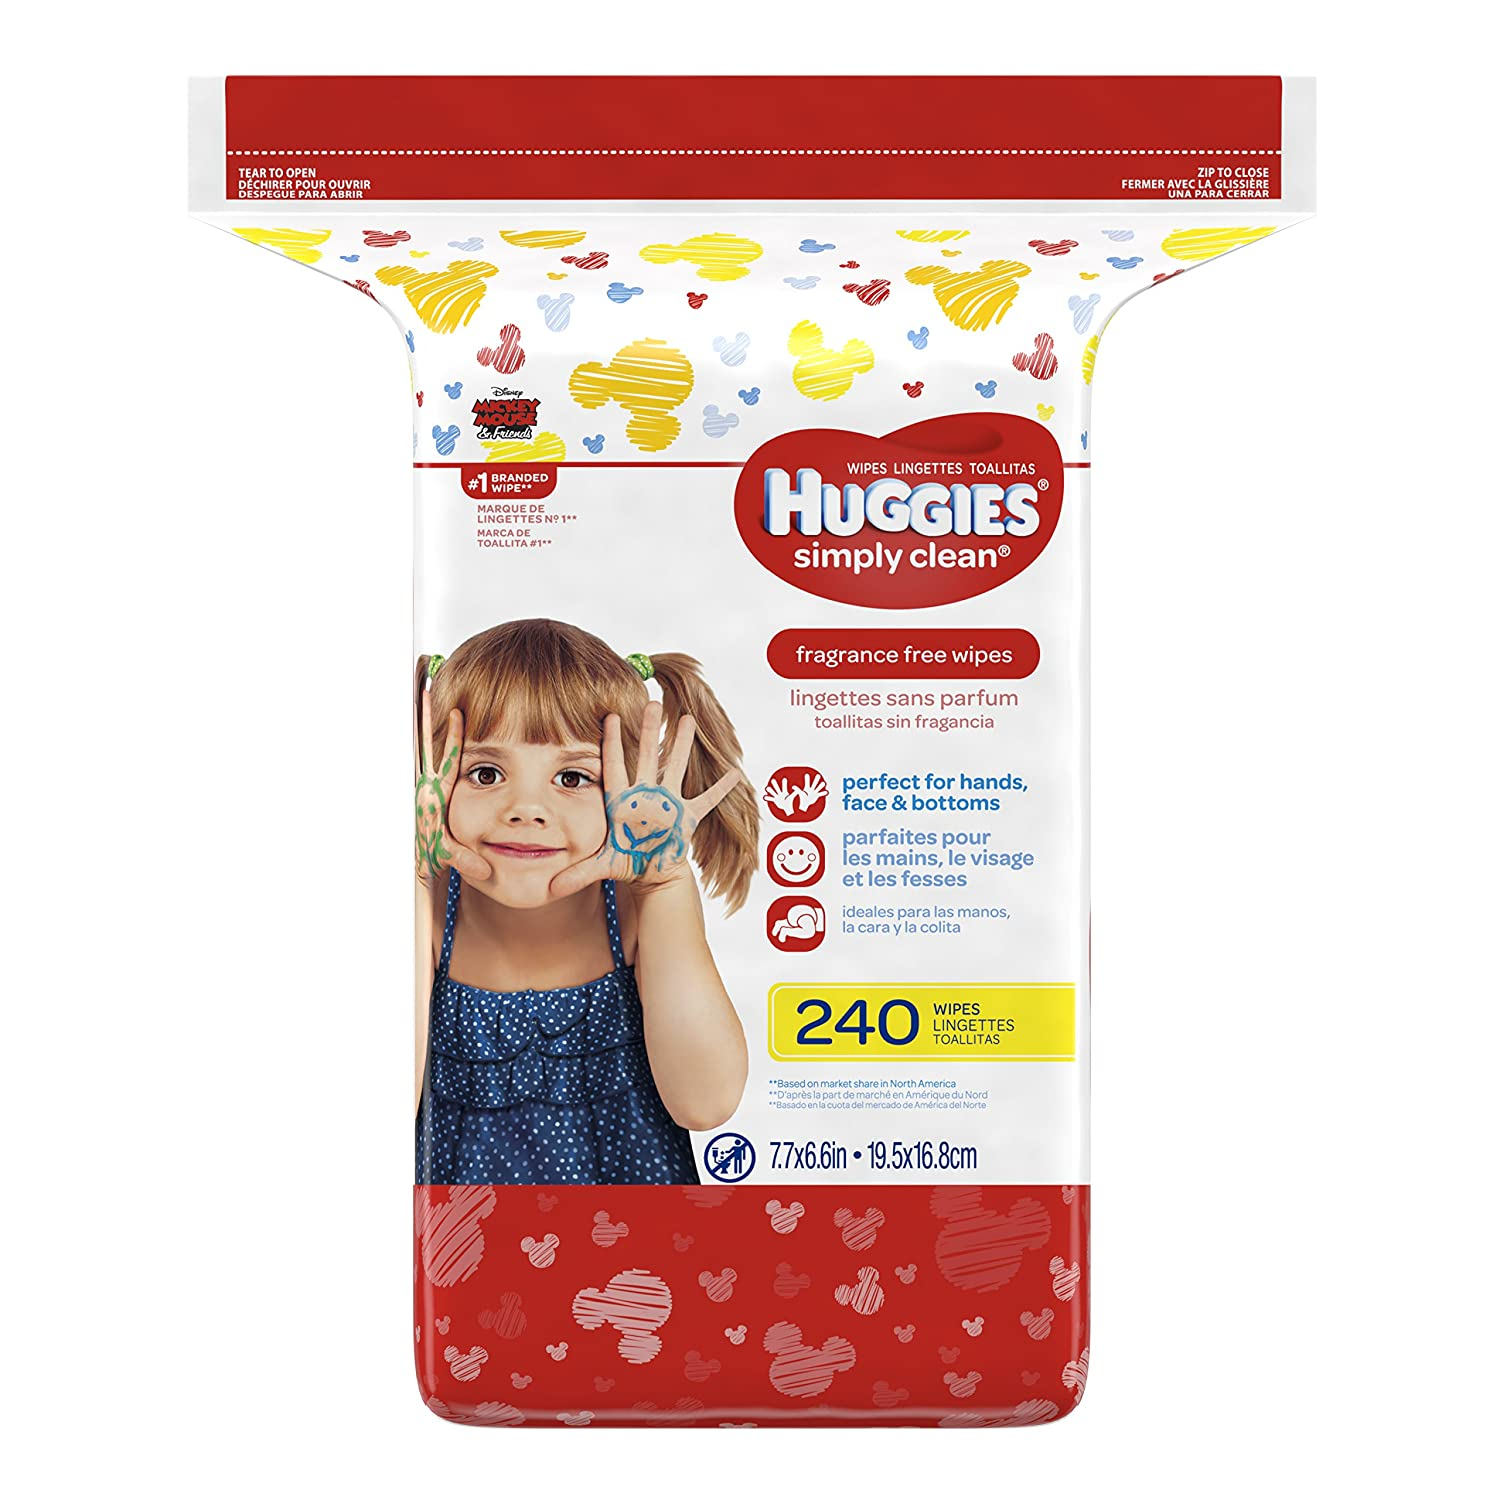 Huggies Simply Clean Baby Wipes, Refill, 240 ct: Amazon.com: Grocery & Gourmet Food